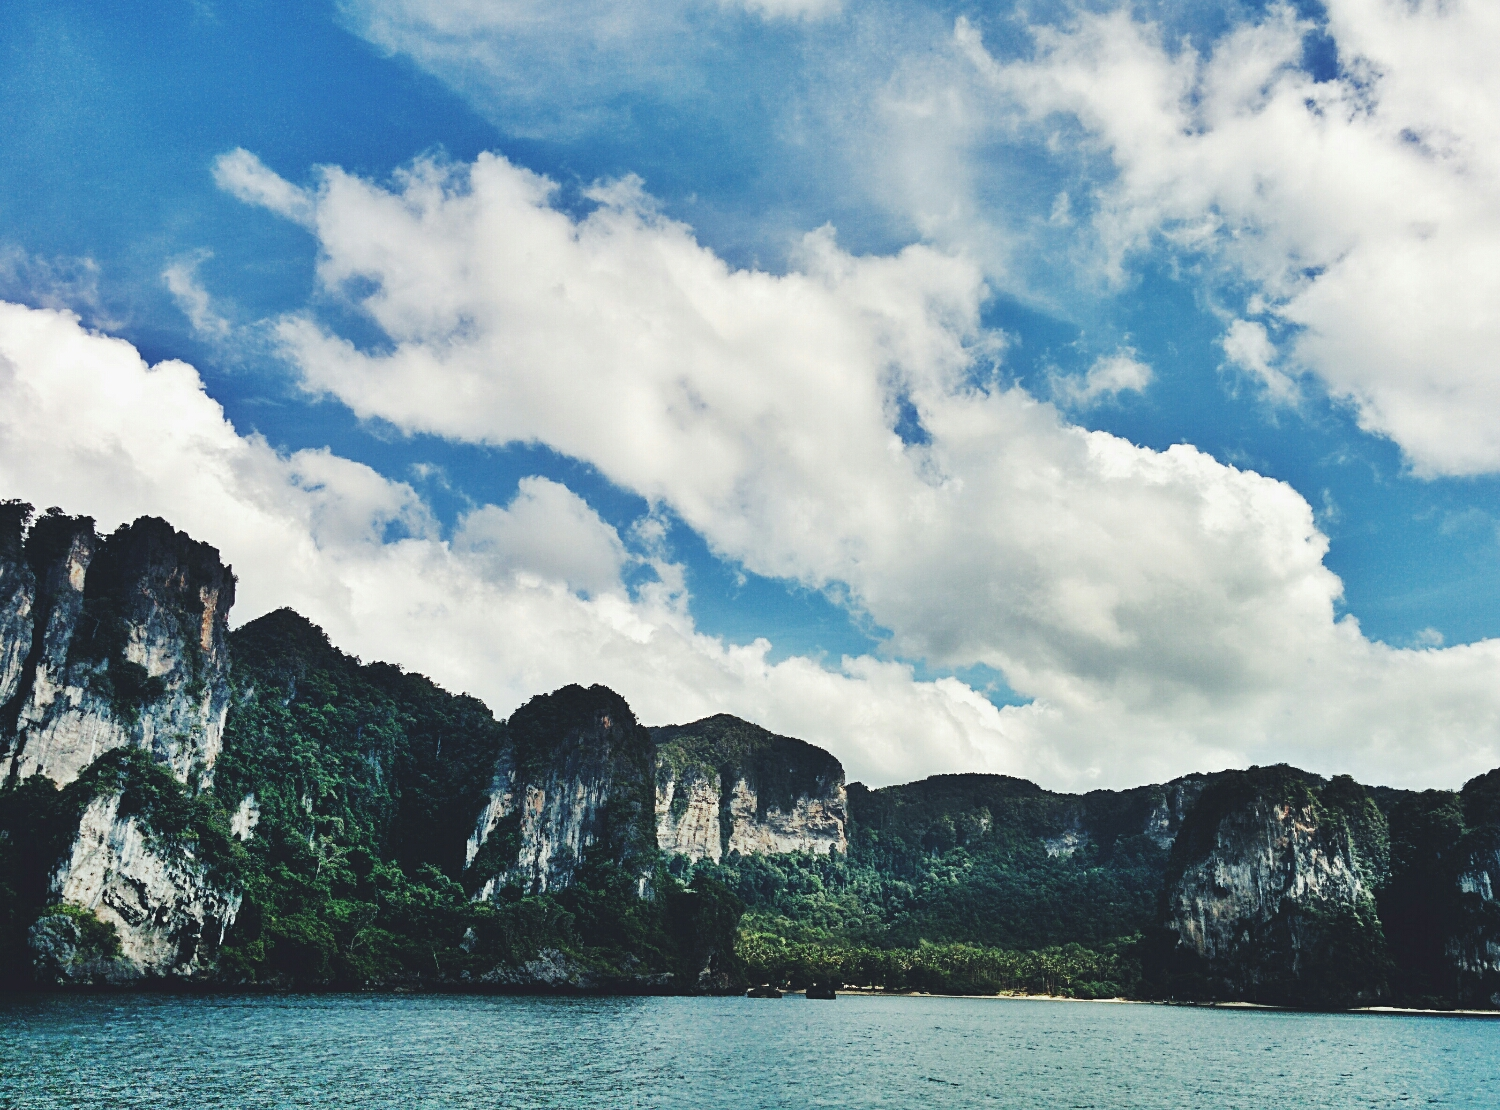 The fleeting clouds passing over the illusive permanence of the sheer cliffs of Railay Beach, Thailand.